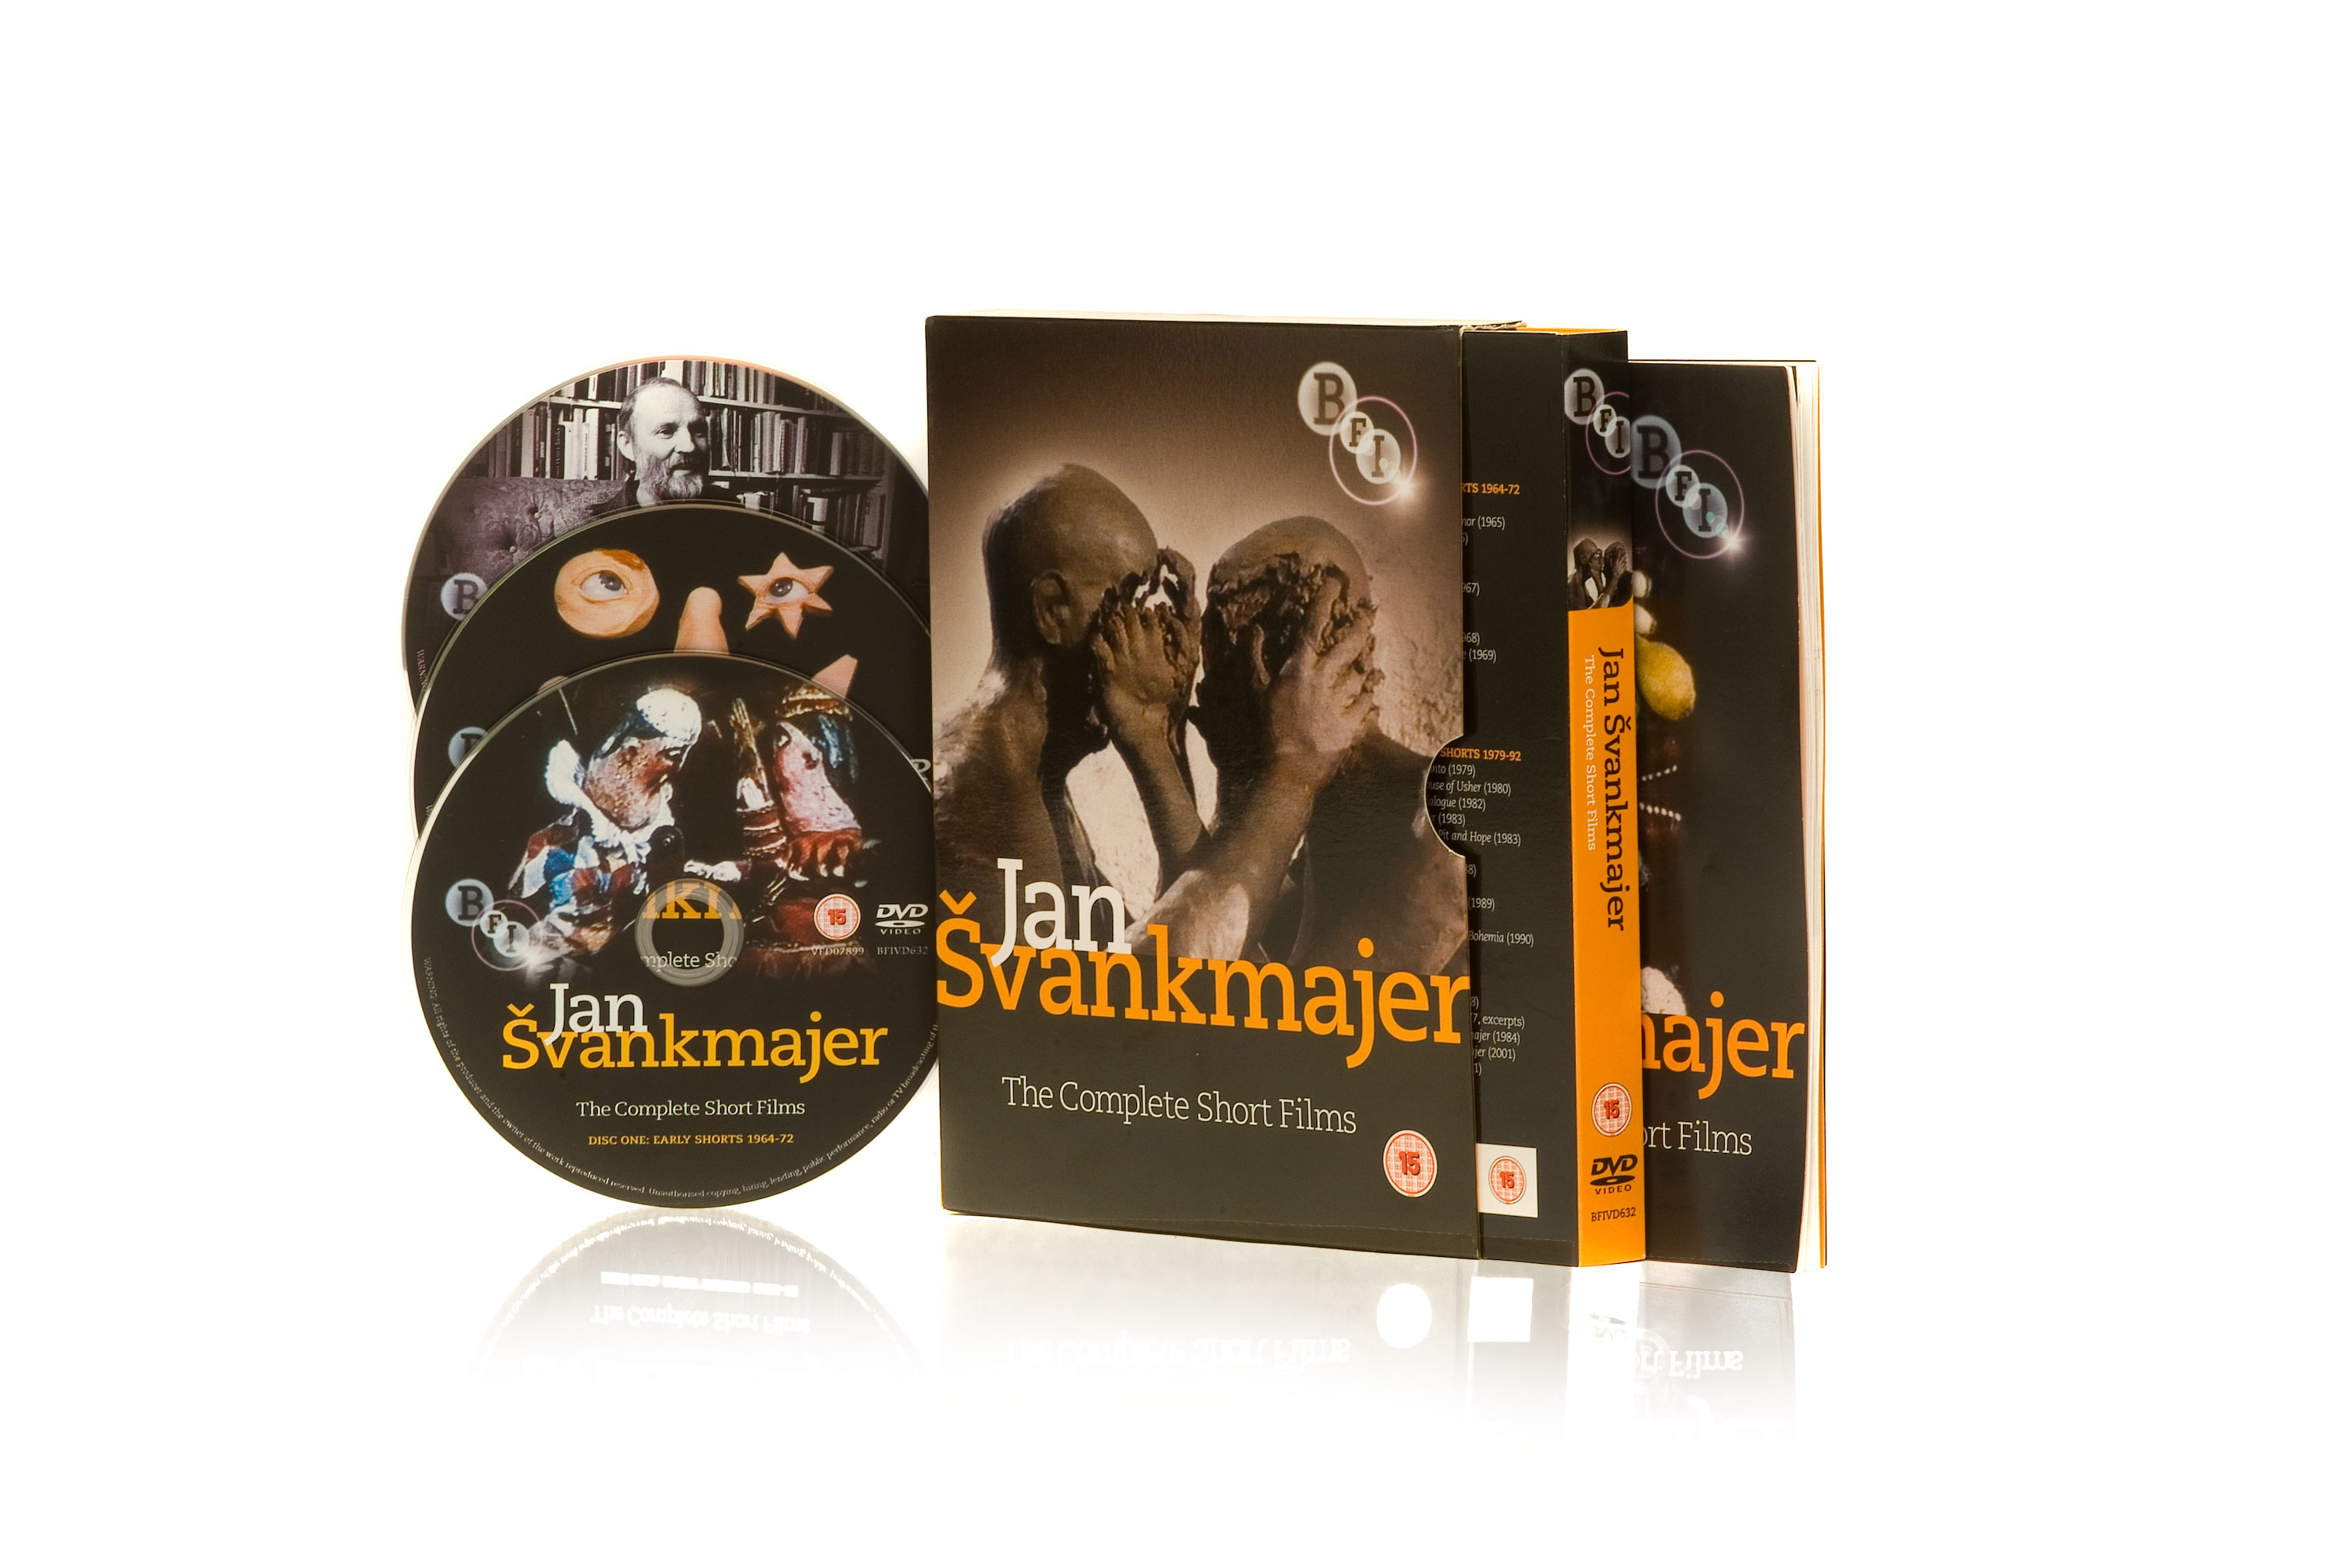 Buy Jan Svankmajer: The Complete Short Films (2-DVD set)